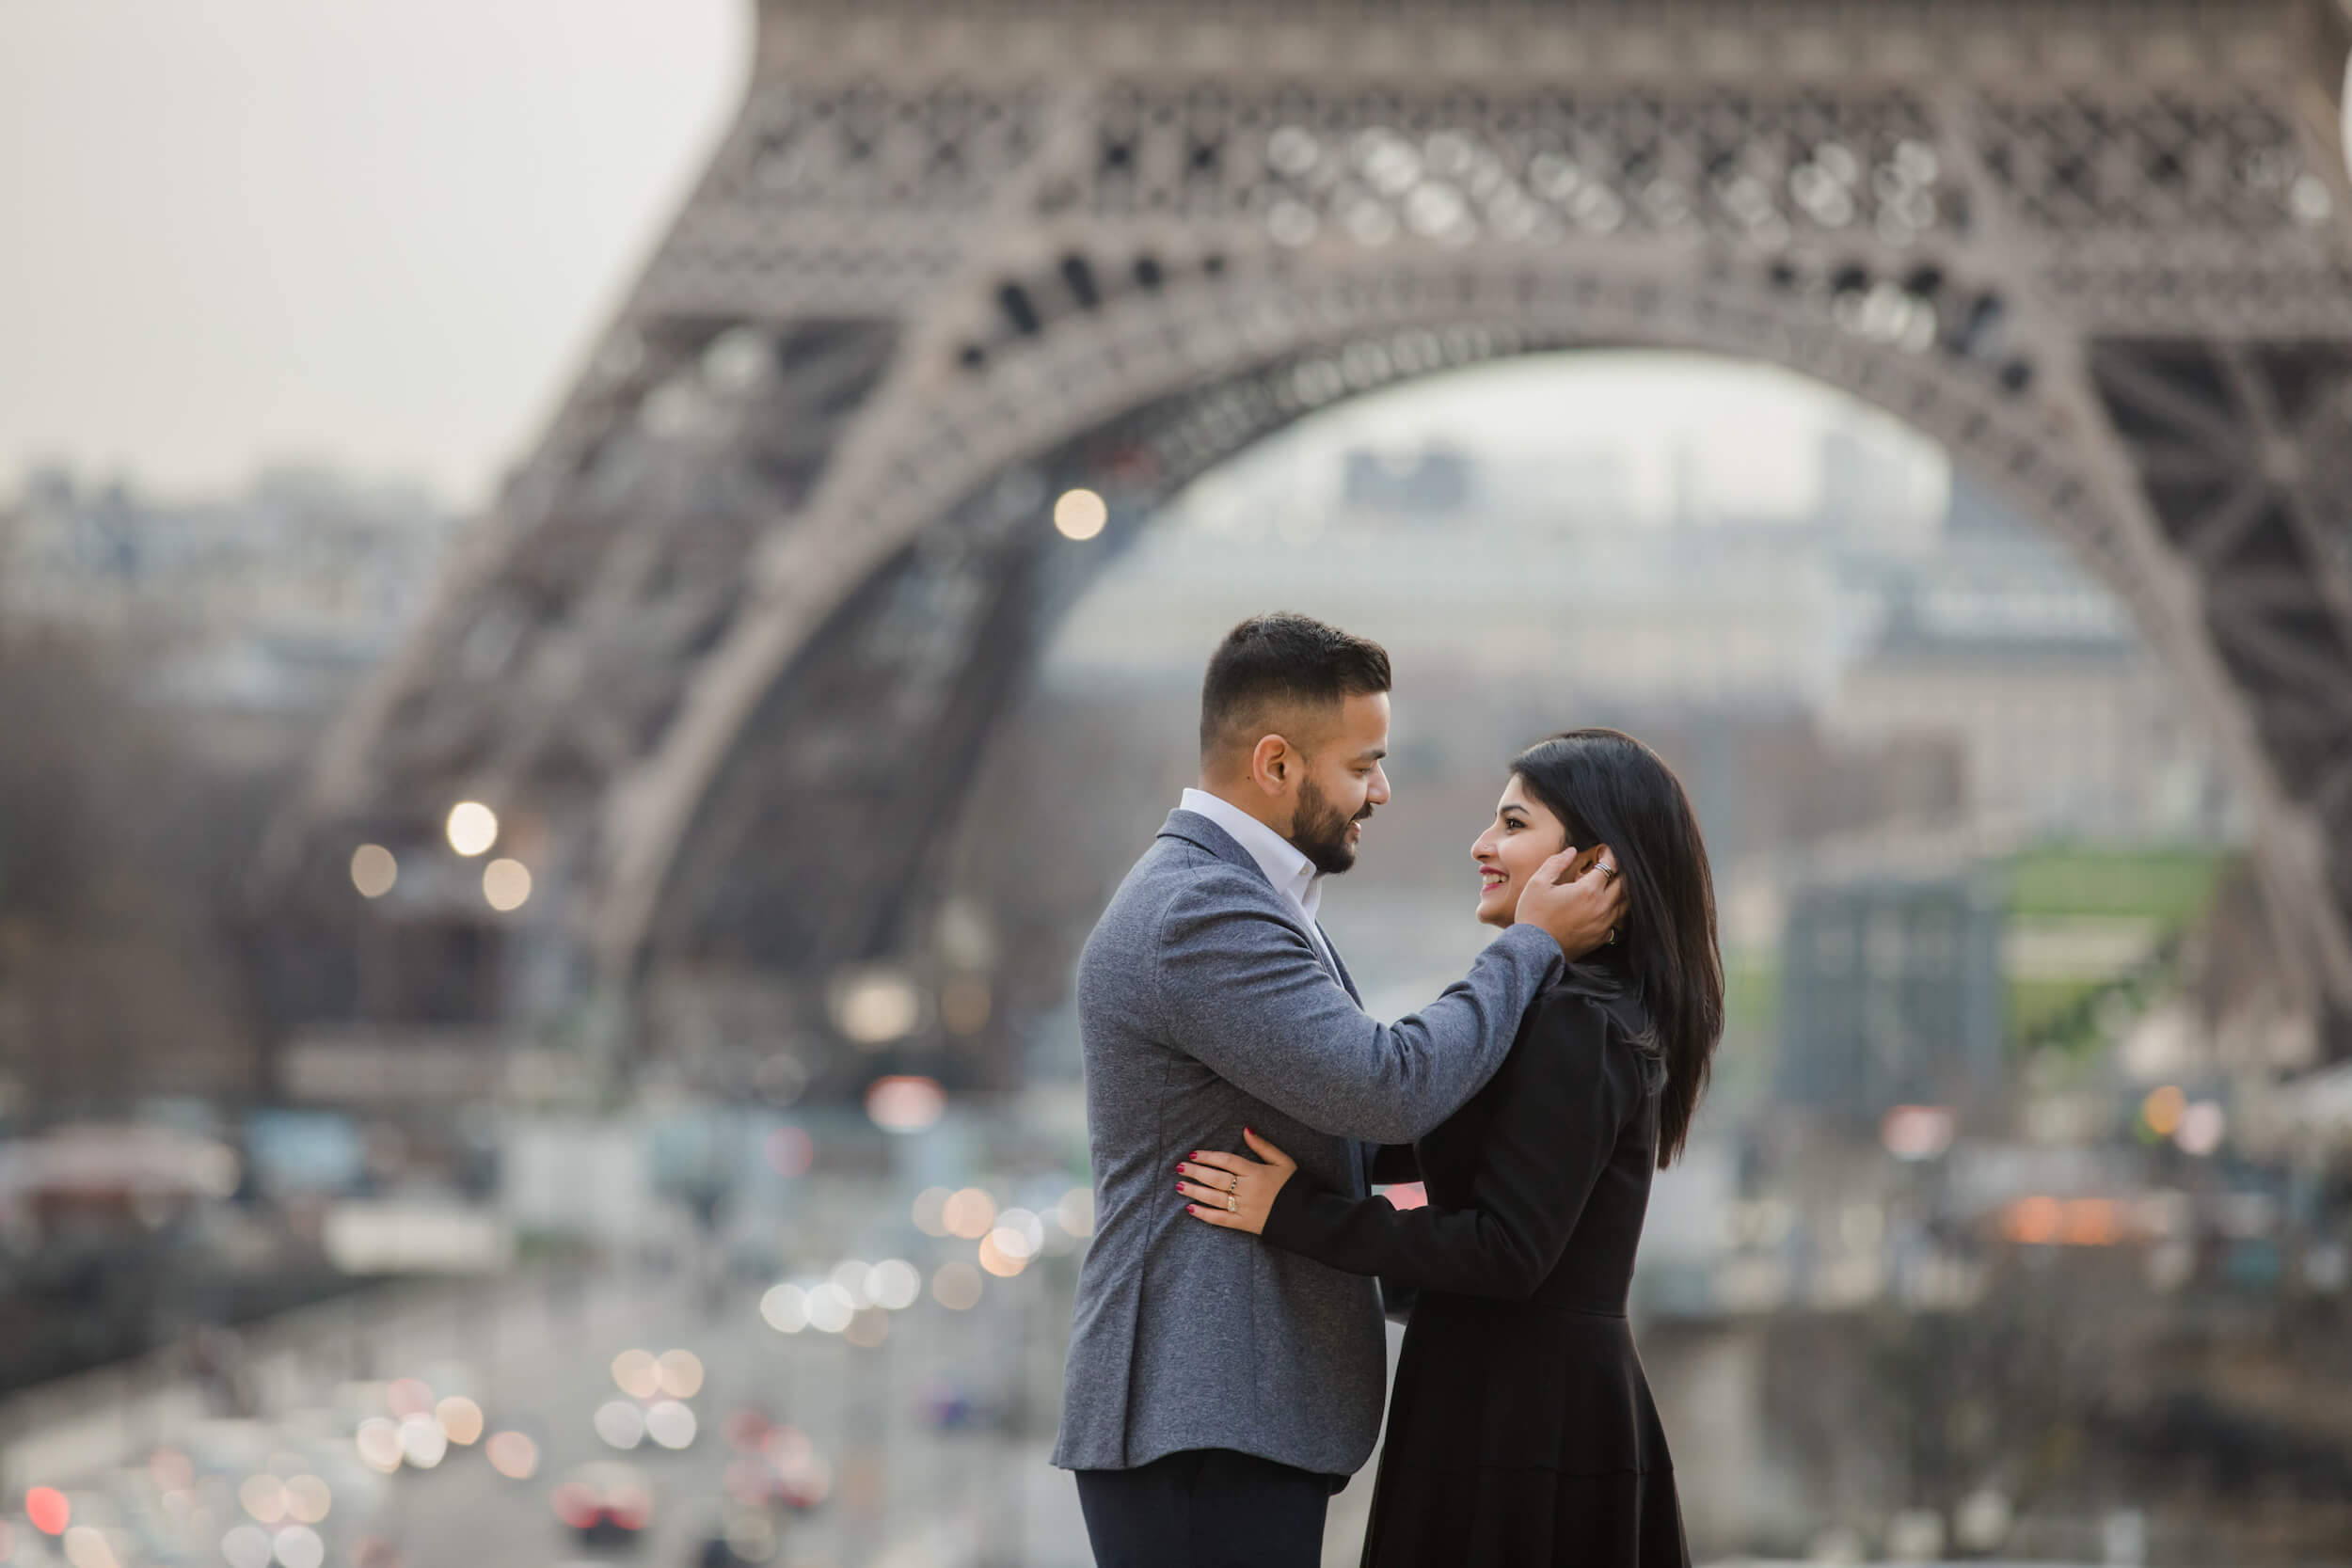 romantic couple photo shoot in paris captured by flytgrapher